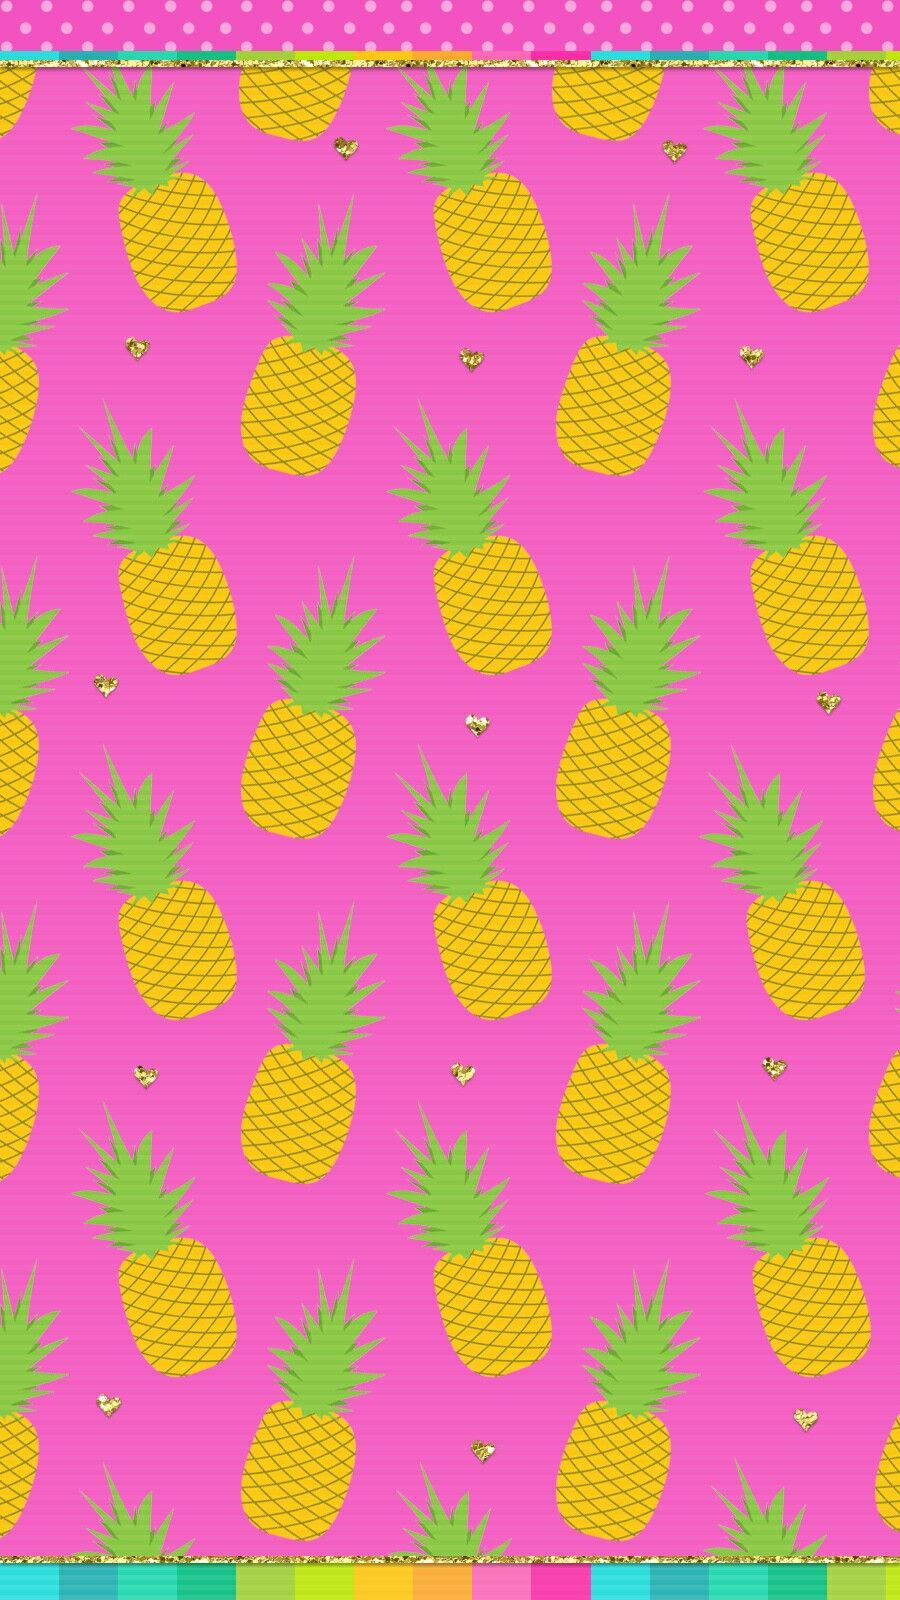 Wallpaper iphone pineapple - Iphone Wall Hk Tjn